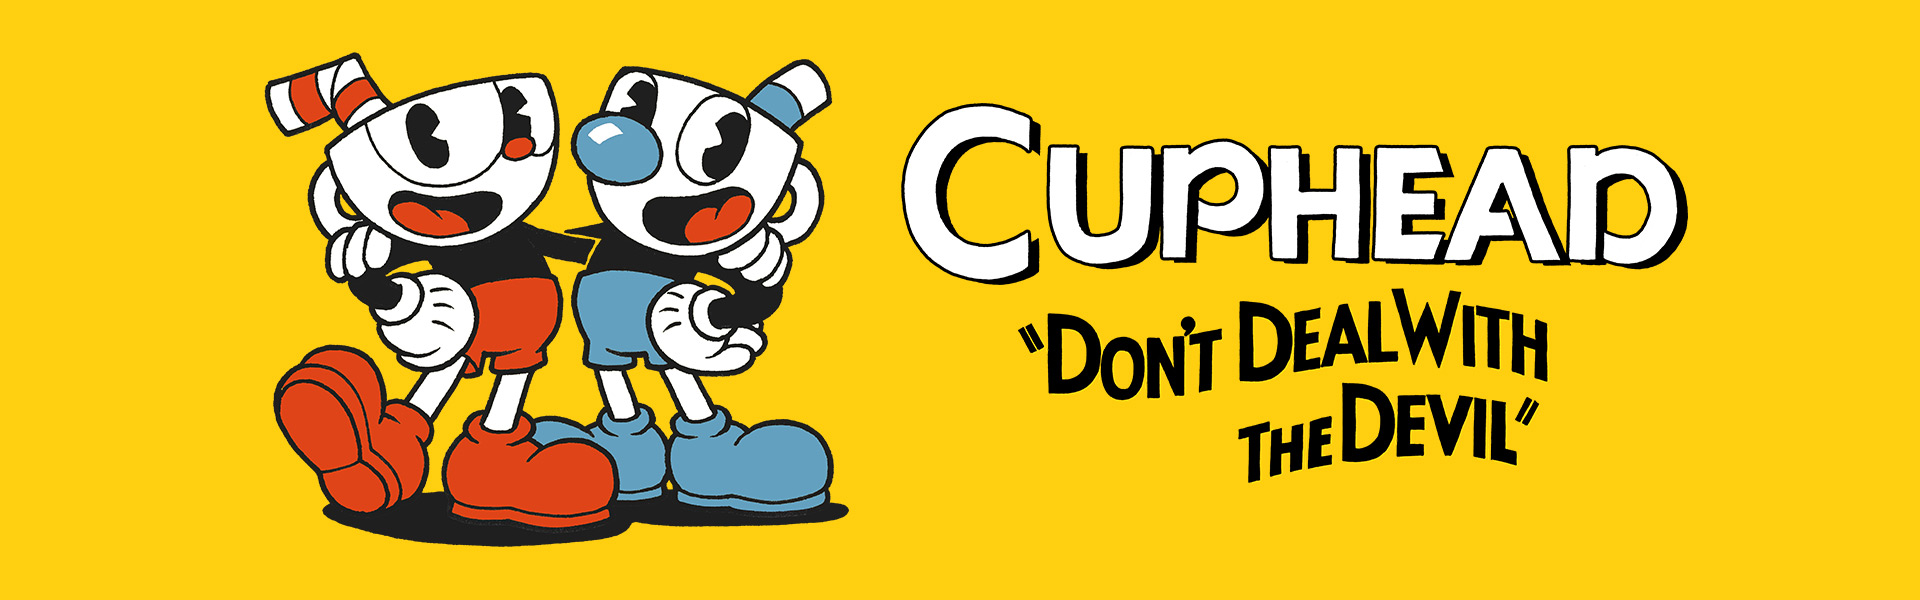 cuphead in the delicious last course, cuphead mugman and ms. chalice characters posing